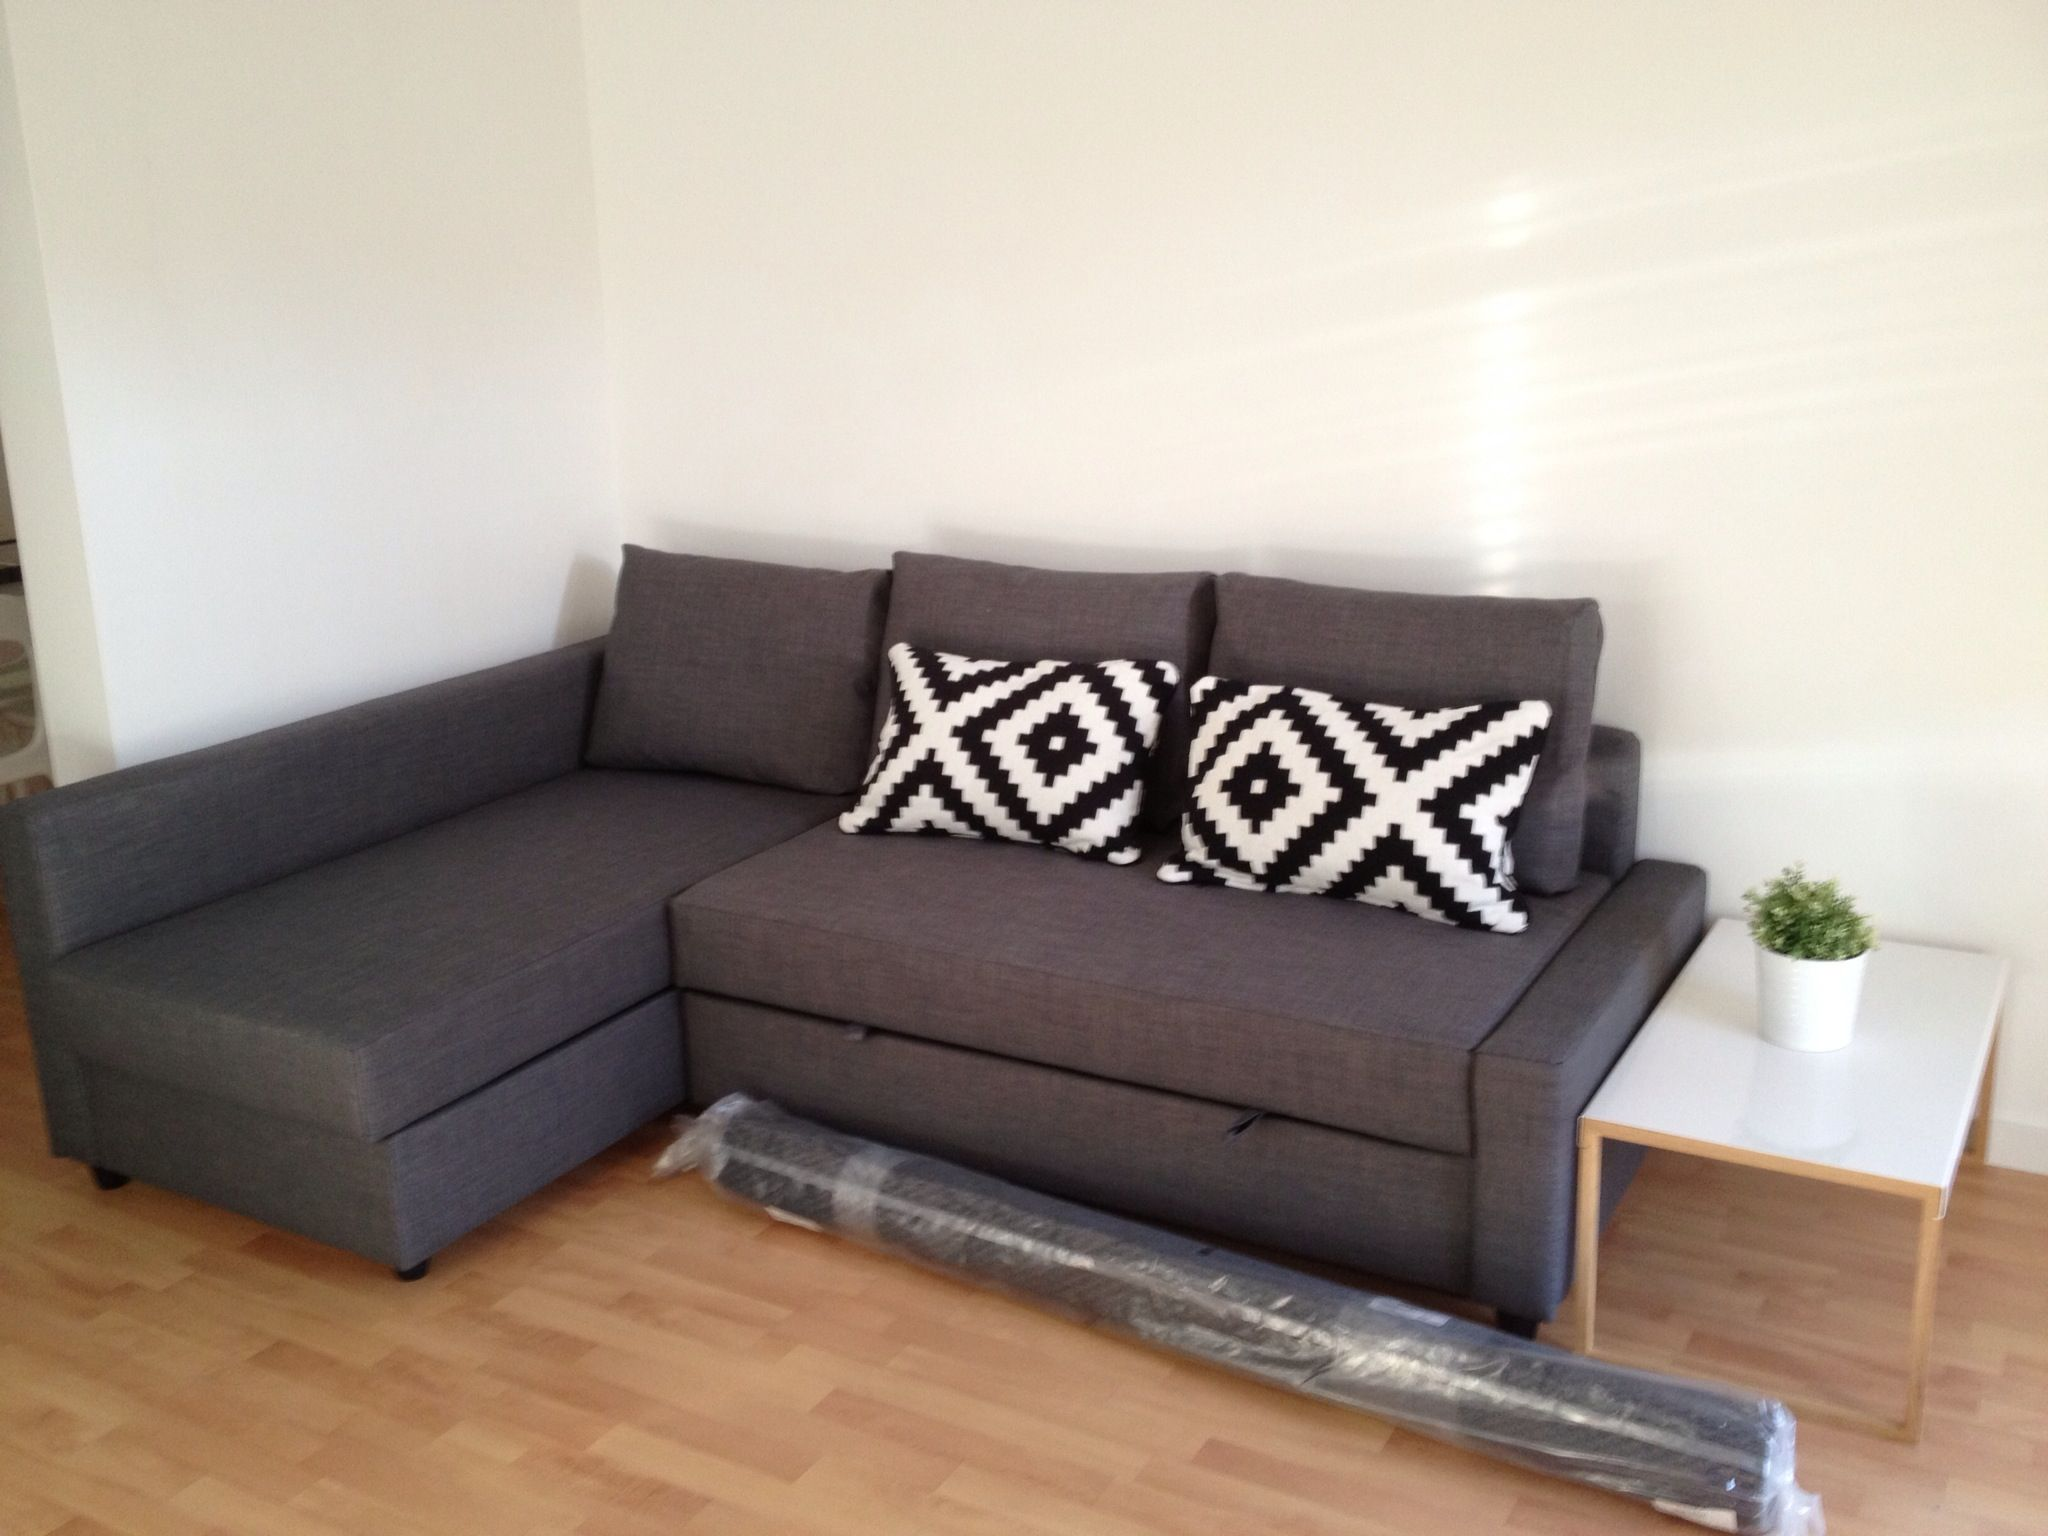 Ikea Sofa Cama Friheten Calle Provenza Work In Progress Sofa Cama Friheten De